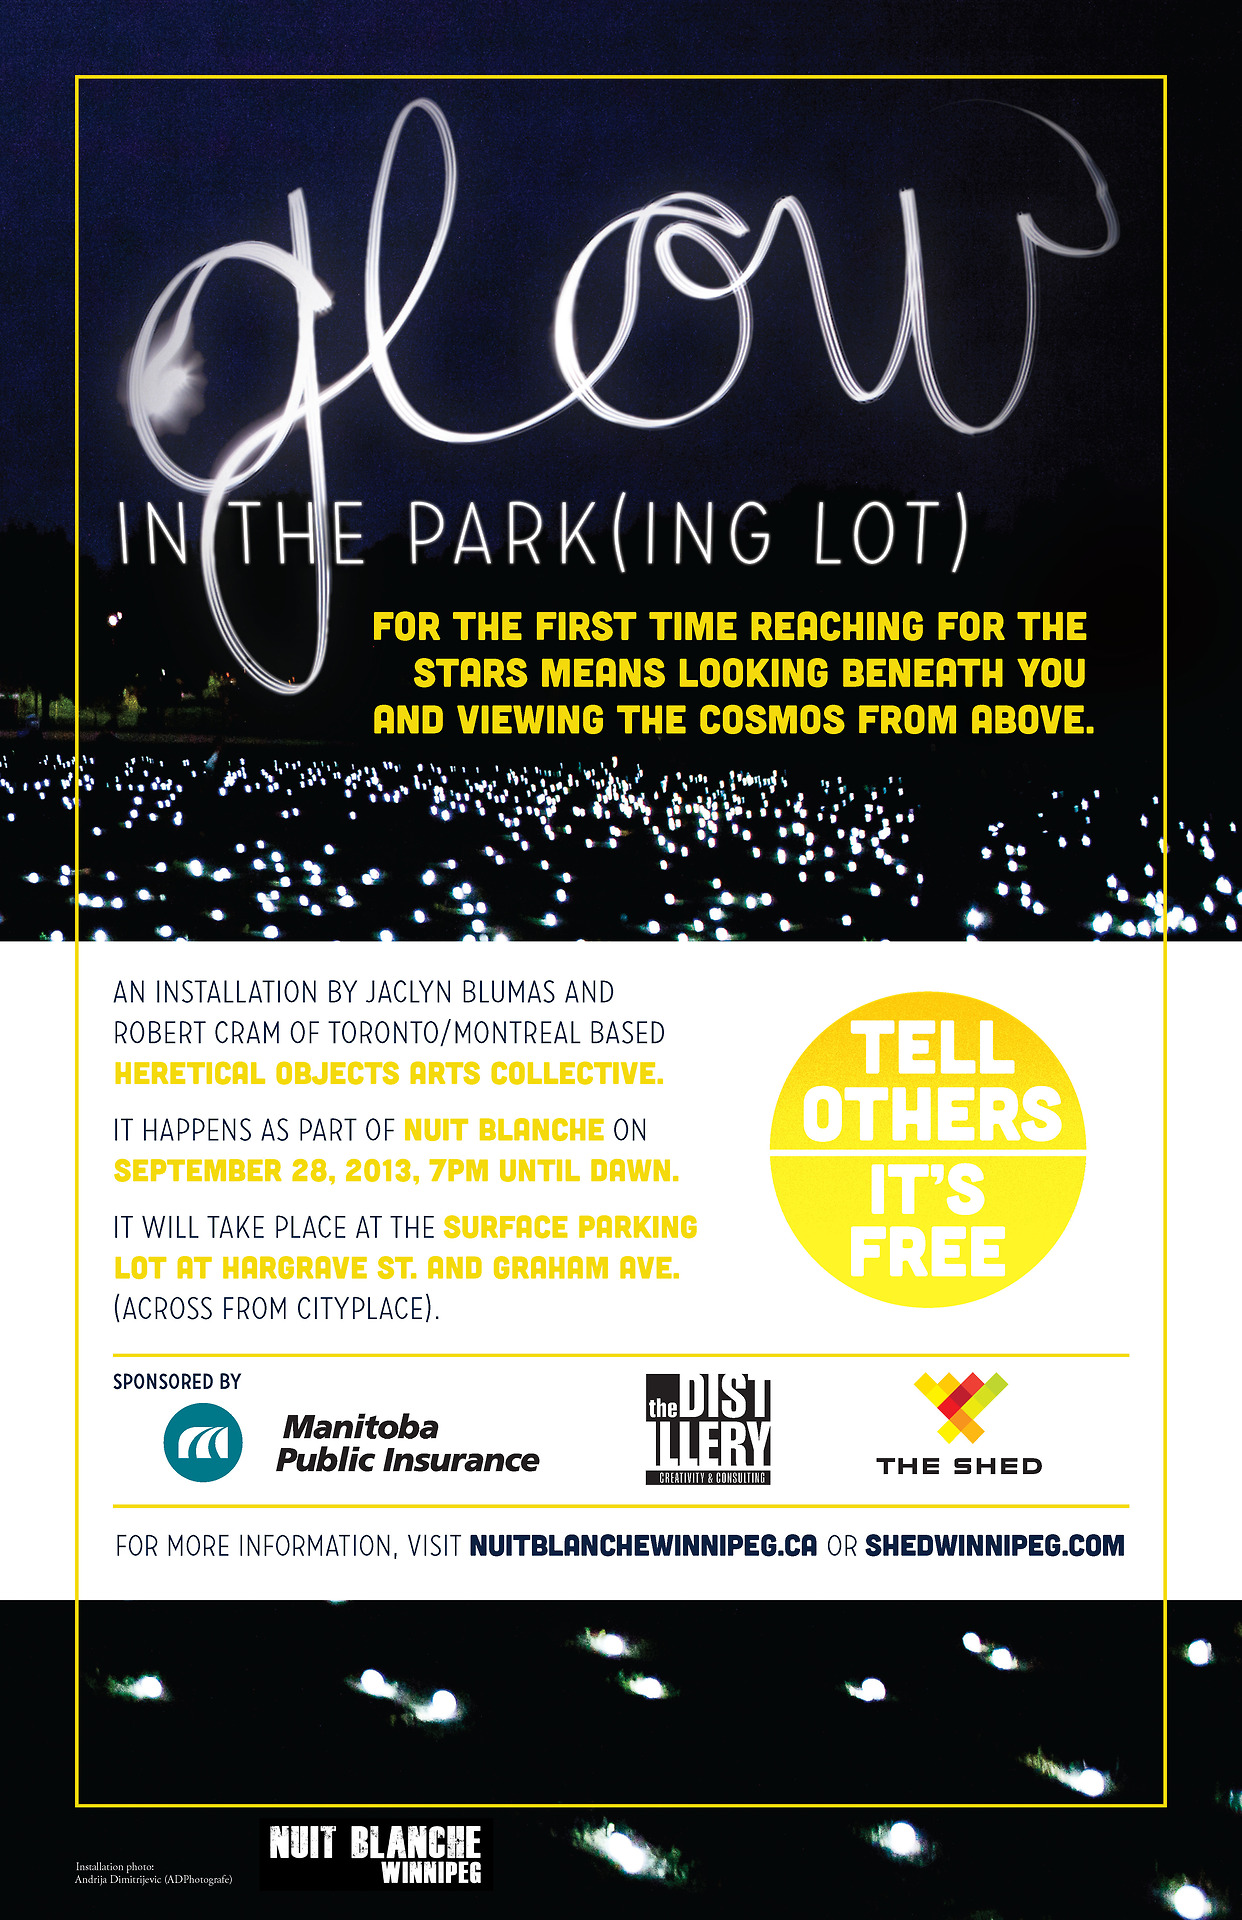 Hey Winnipeg! We are so excited about Nuit Blanche on Sept 28th. If you want to see what 5000 stars looks like in a parking lot. Come visit us in the SHED.